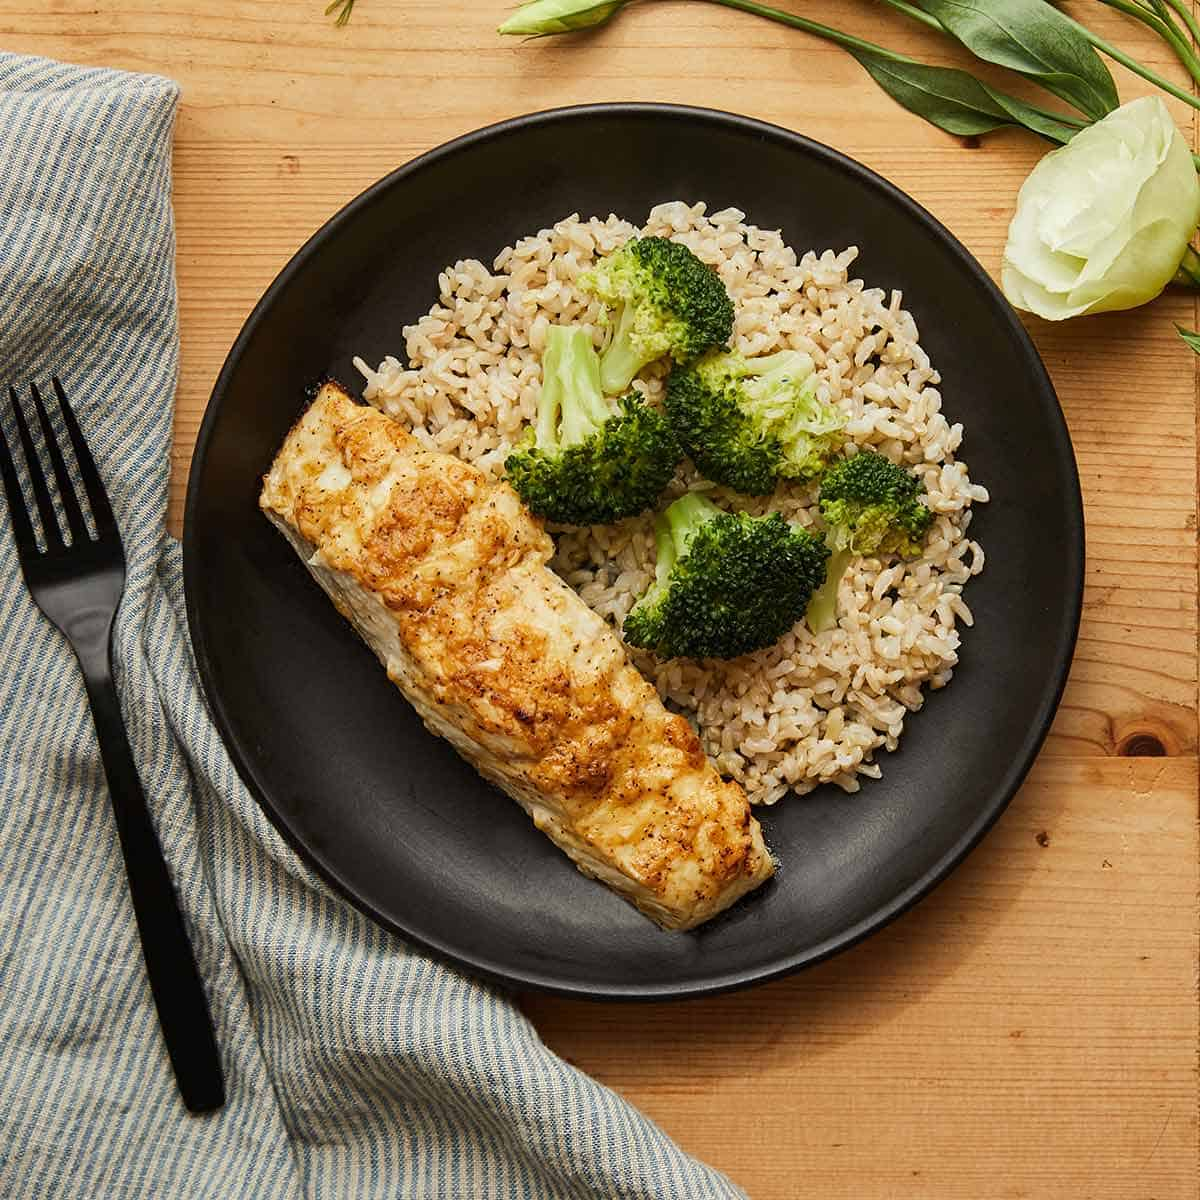 Roasted Dijon Halibut served with brown rice and broccoli on a black plate